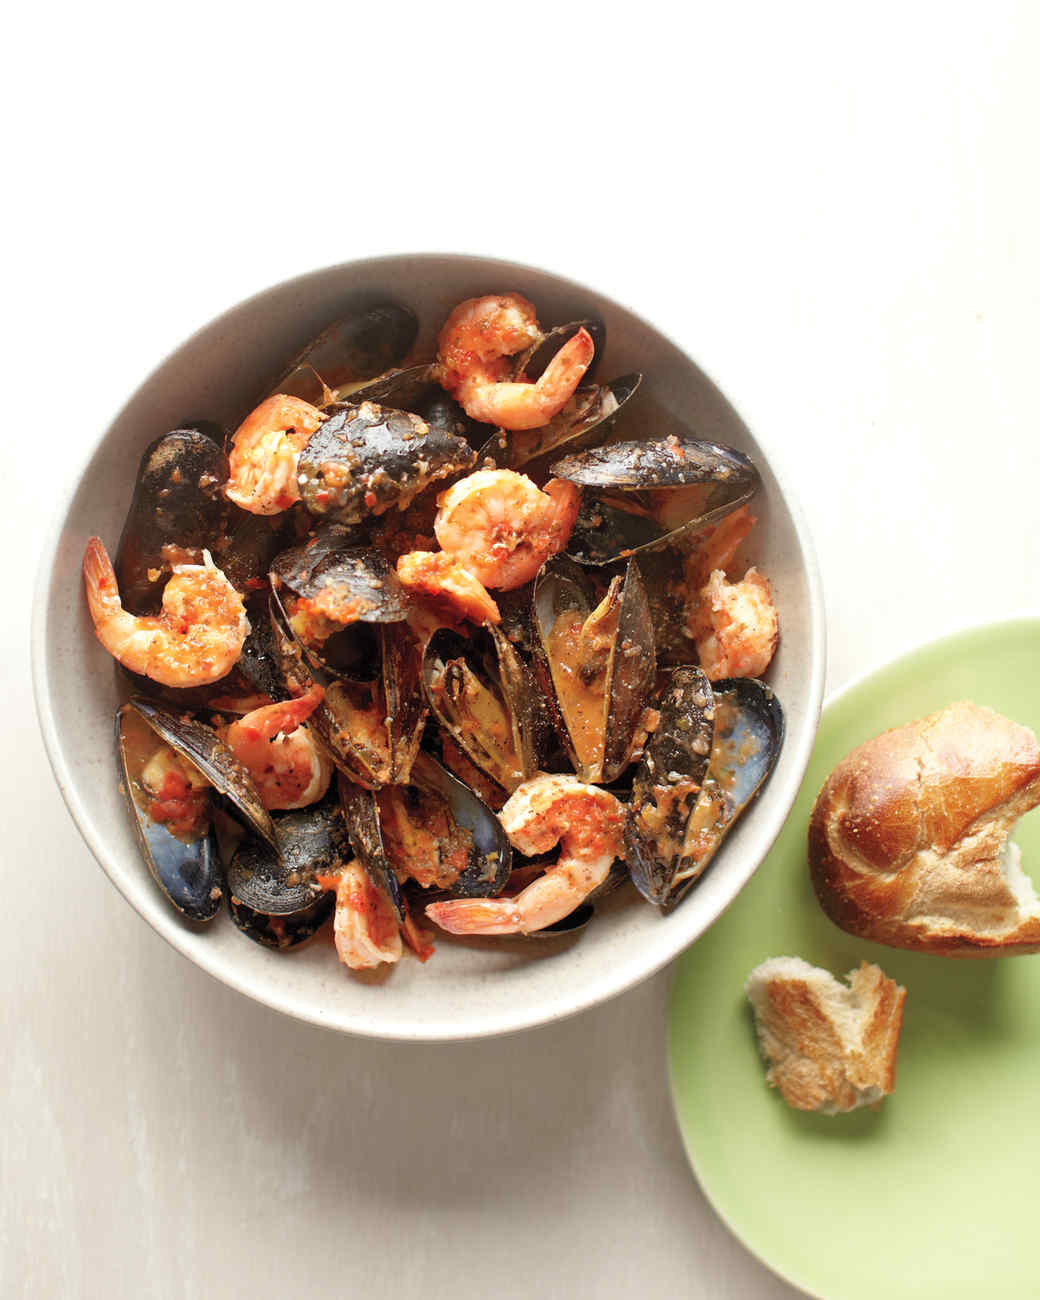 Discussion on this topic: Spanish Tapas-Inspired Mussels, spanish-tapas-inspired-mussels/